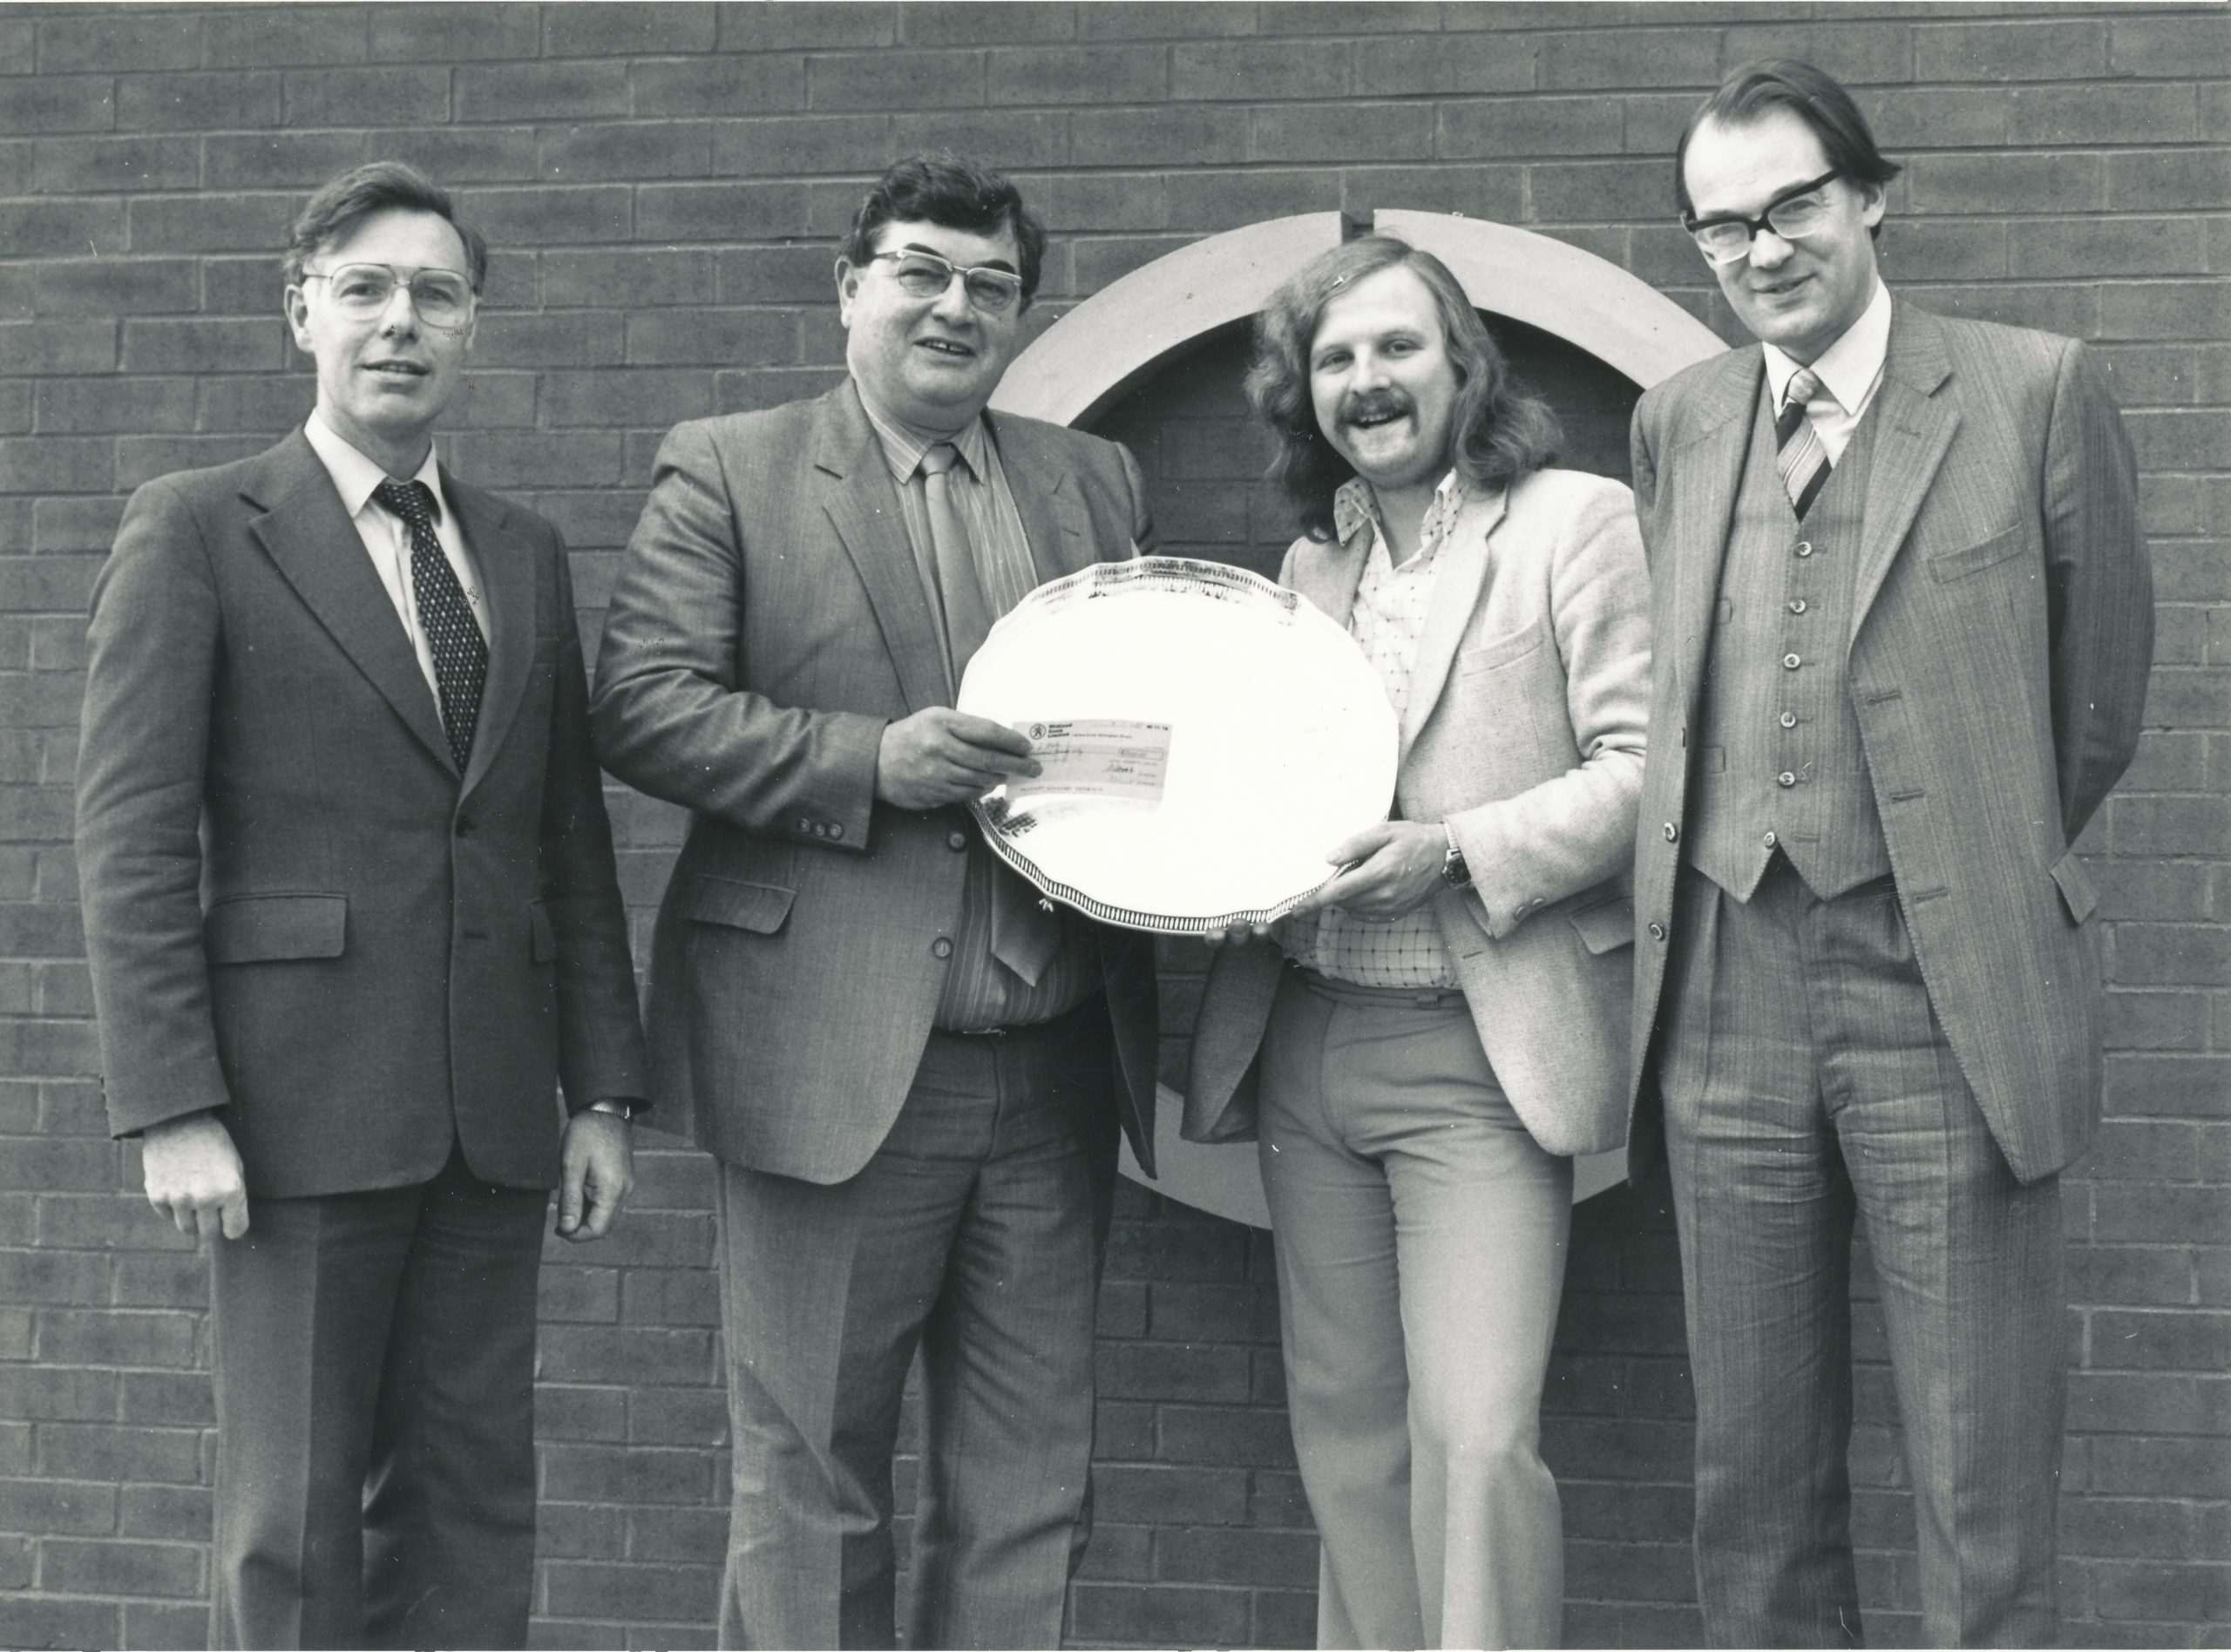 Tony receives the 1984 Leigh Grand Prix award from Dr. A Kent, Malcolm Wood (Chief Executive) and David Anderton OBE